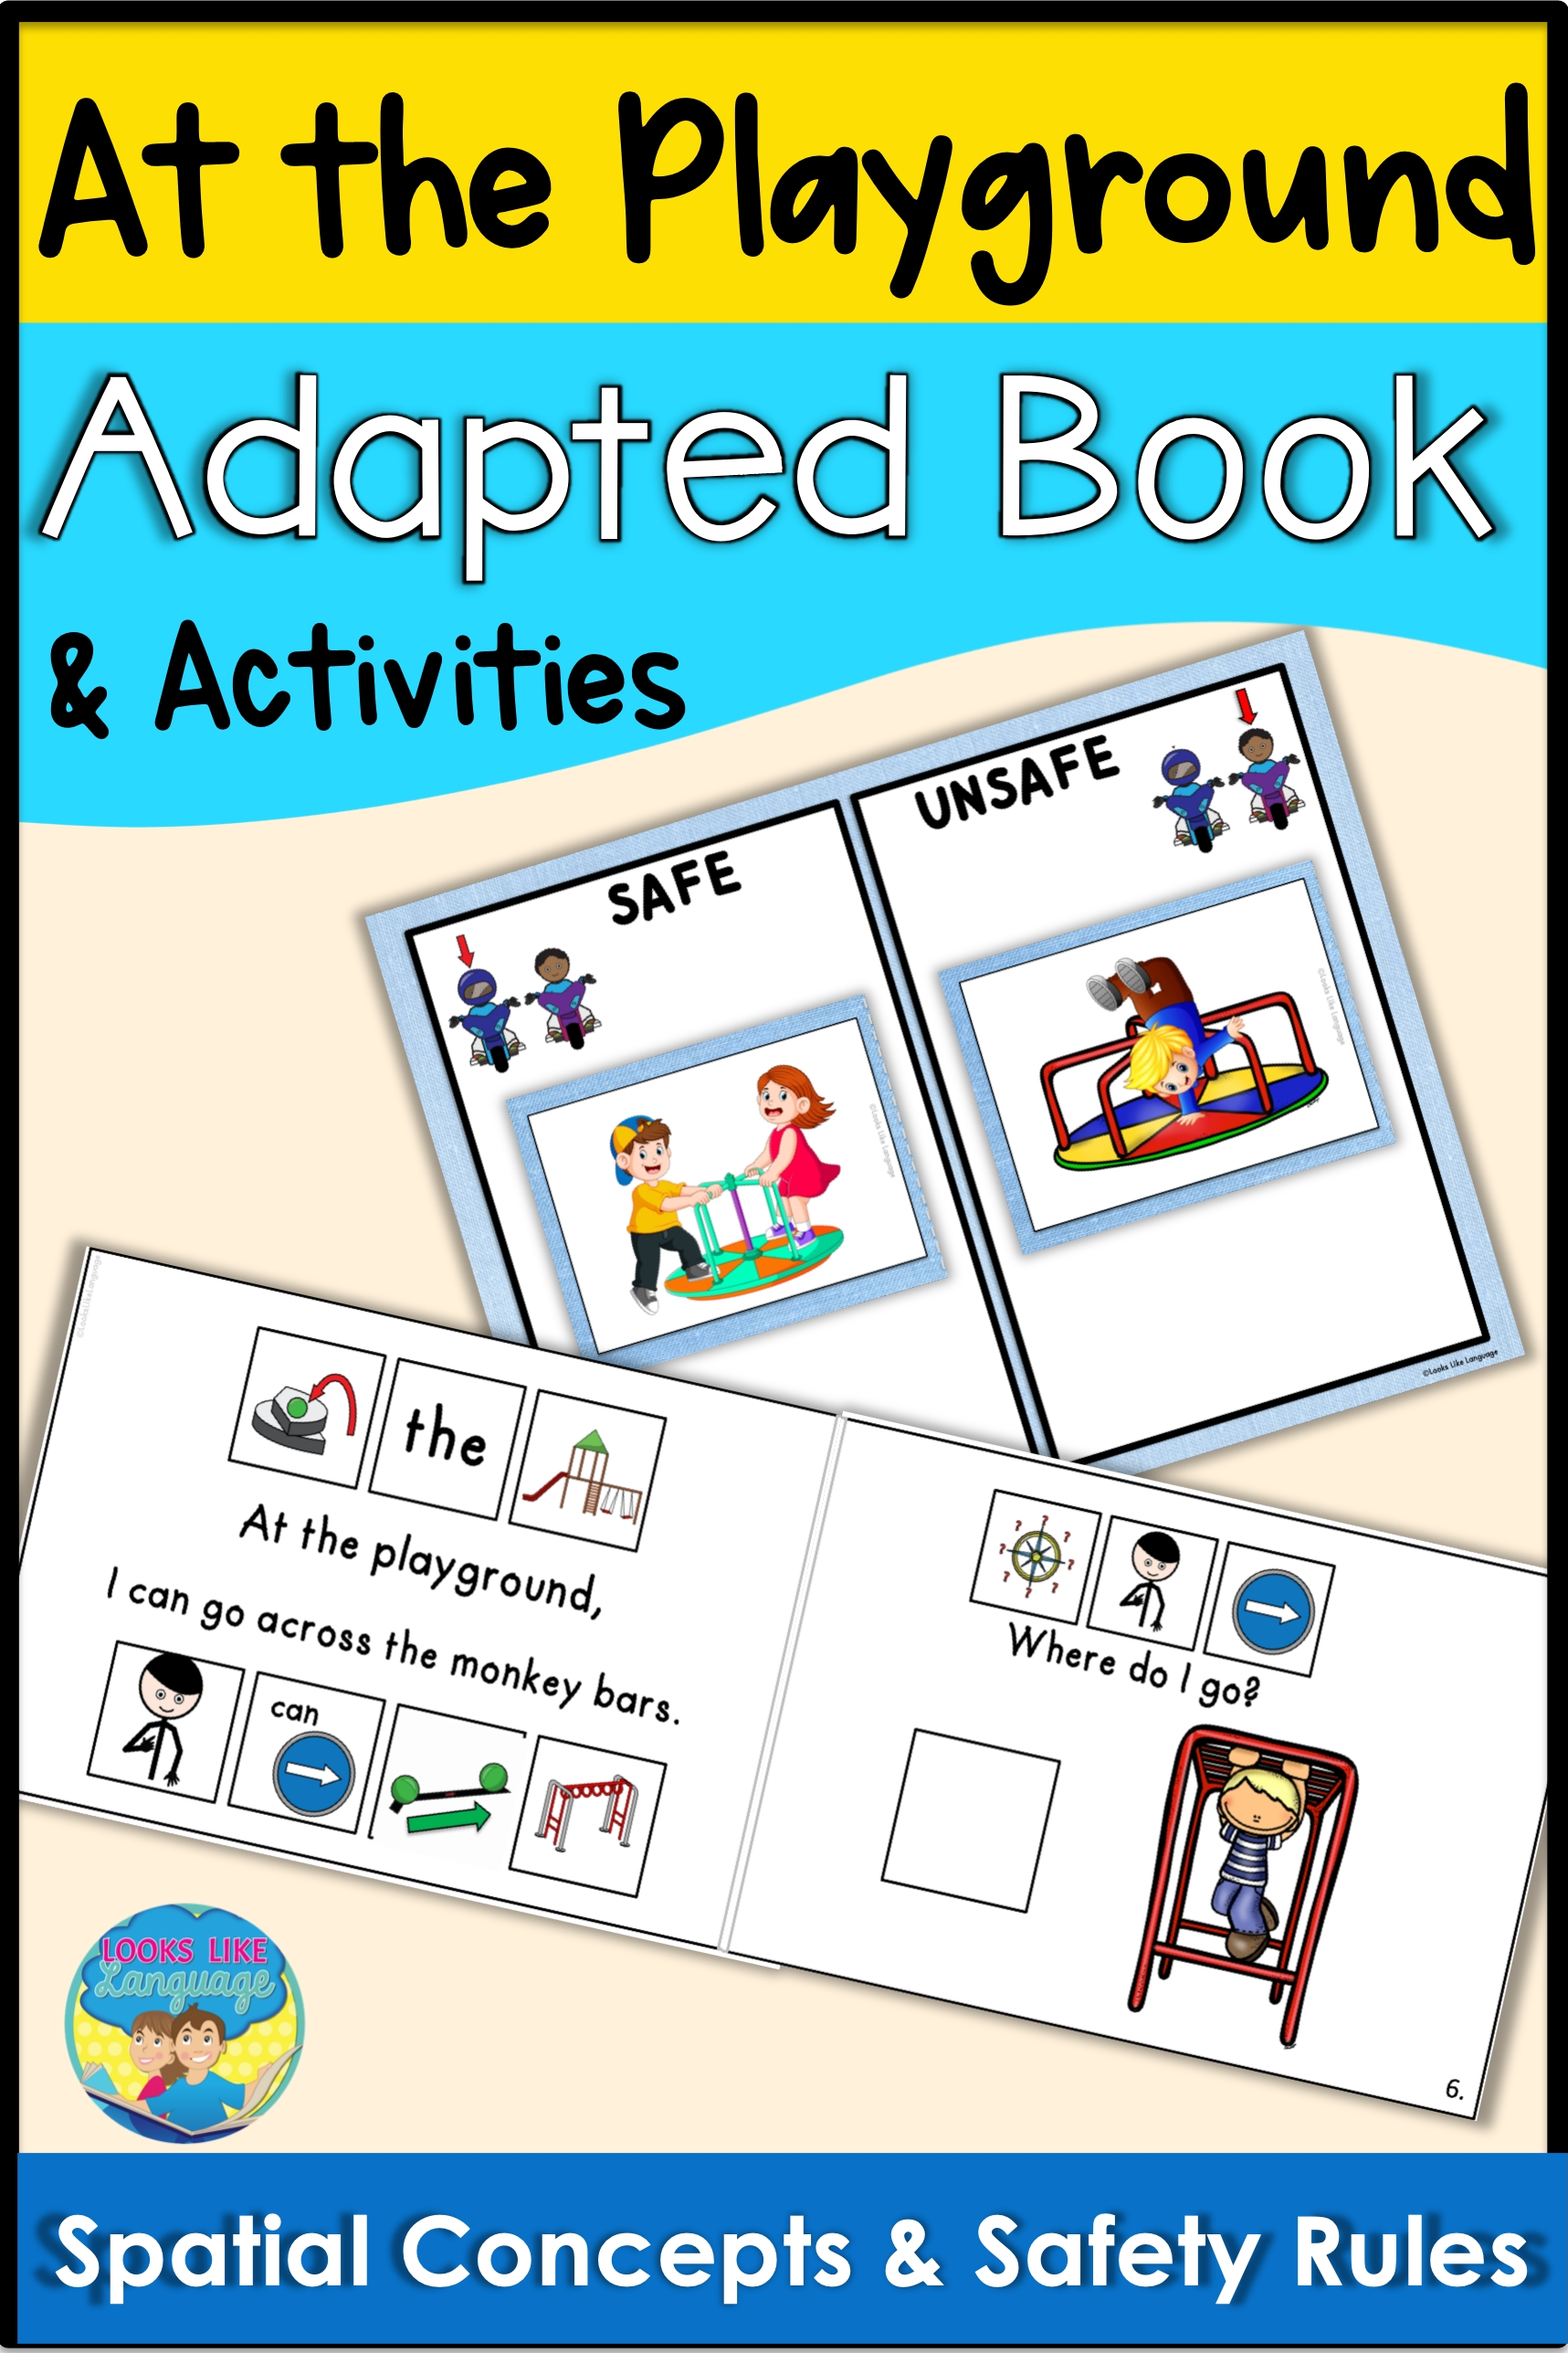 Use This Adapted Book And Playground Themed Activity Set